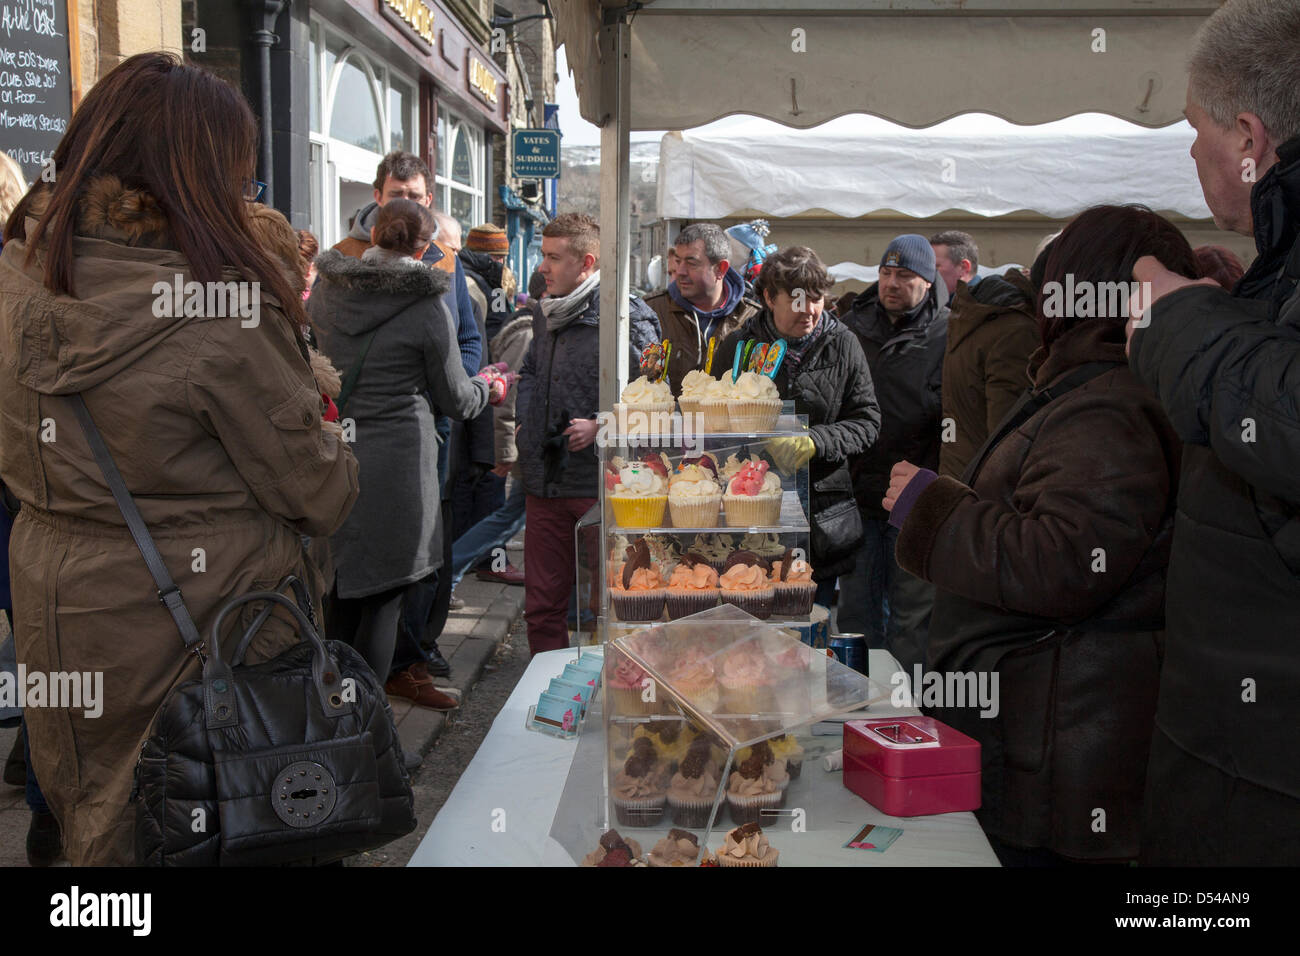 Ramsbottom, Lancashire, UK Sunday 24th March, 2013. Chocolate Stall at the 5th Annual Chocolate Festival, held in Stock Photo